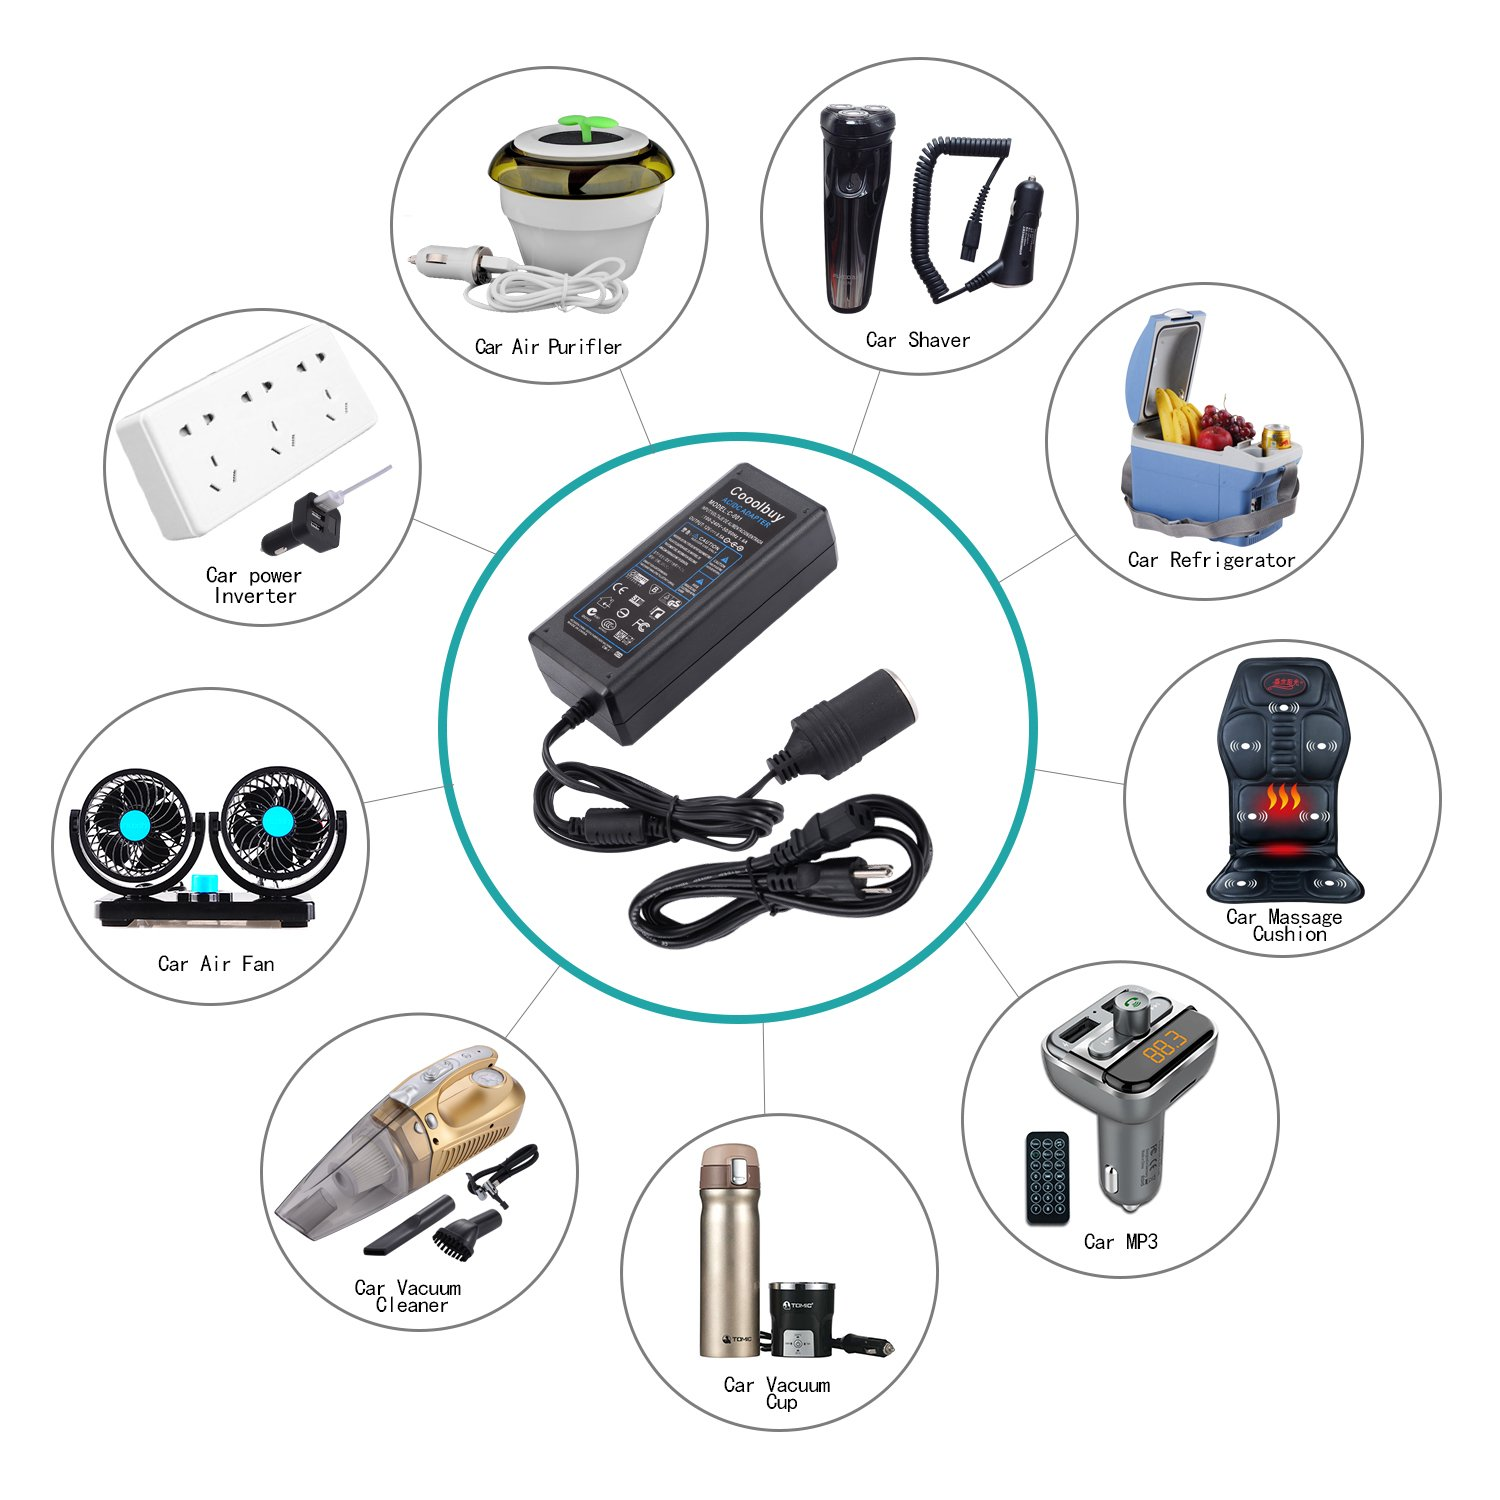 AC to DC Converter, Cooolbuy 8.5A 102W 110-220V to 12V Car Cigarette Lighter Socket AC/DC Power Supply Charging Adapter by Cooolbuy (Image #5)